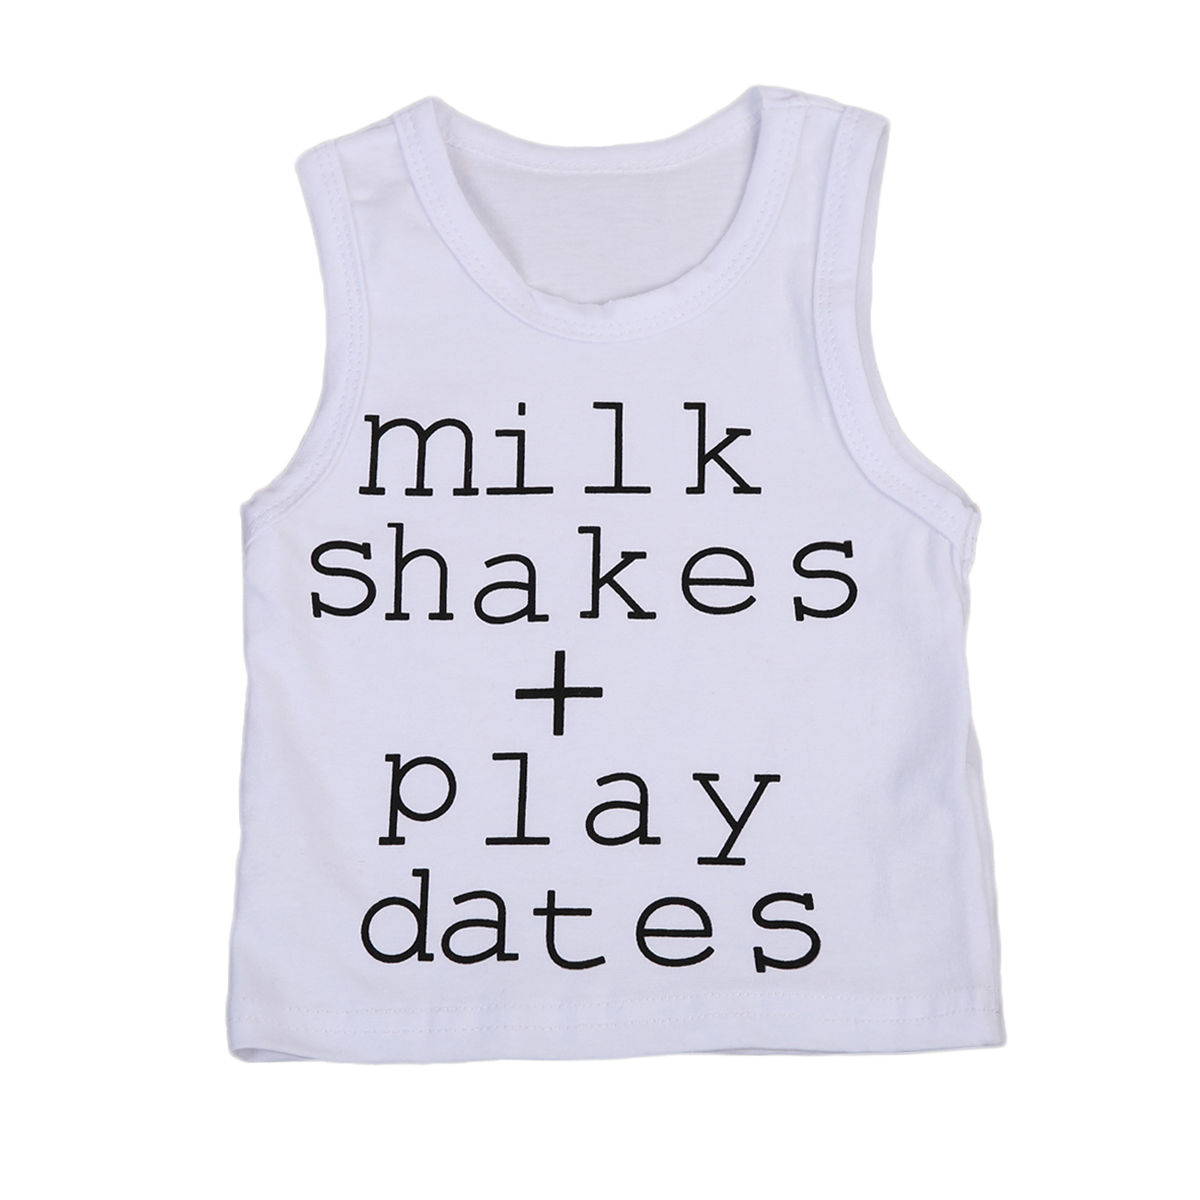 Baby Boys T Shirts Vest Cotton outfits Clothes 0-24M Newborn Infant Baby Boy Clothing Sleeveless Tee Top